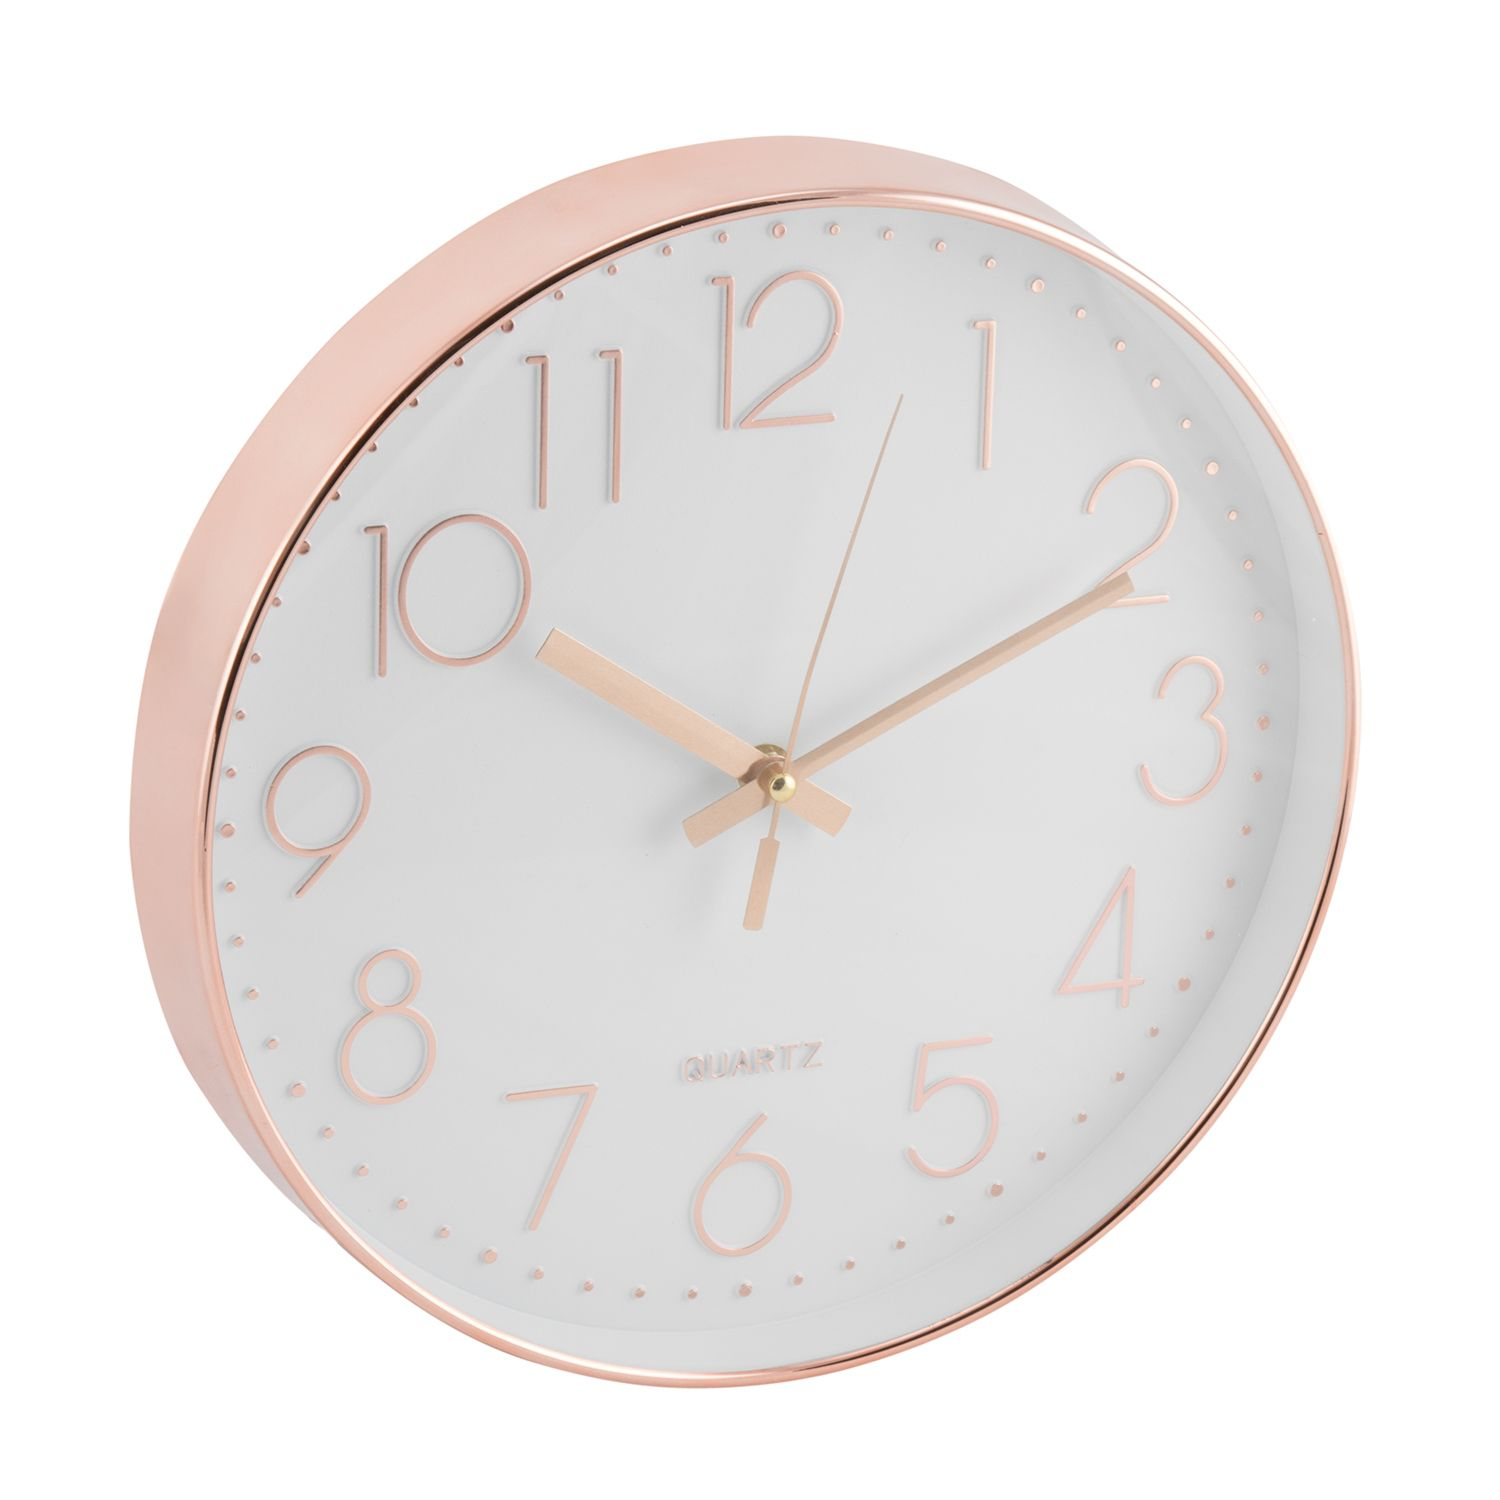 16 Rose Gold And Copper Details For Stylish Interior Decor: Copper Wall Clock